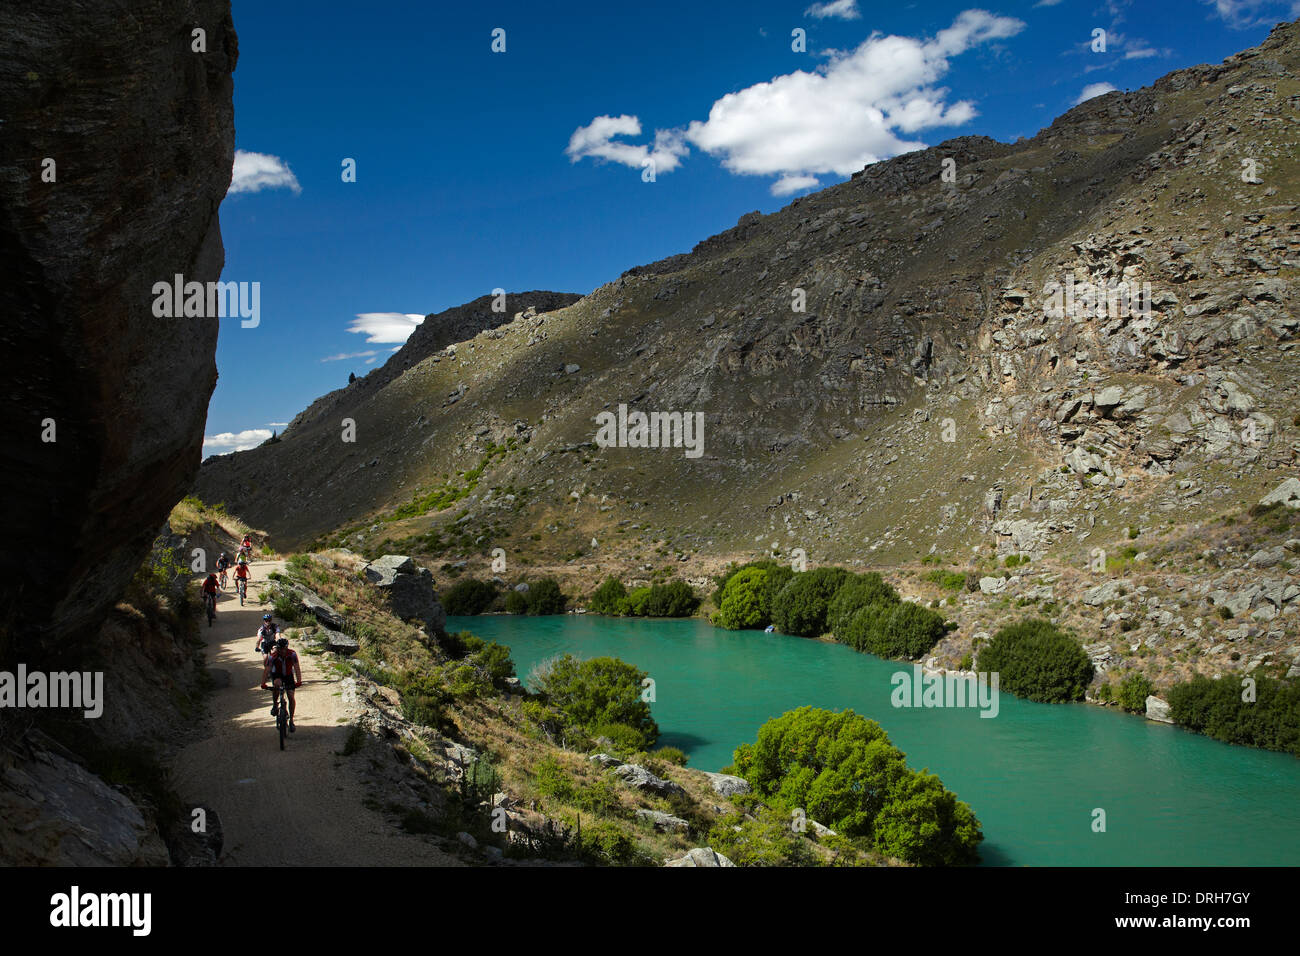 Mountain bikers and Lake Roxburgh on Roxburgh Gorge Cycle and Walking Track, Central Otago, South Island, New Zealand - Stock Image